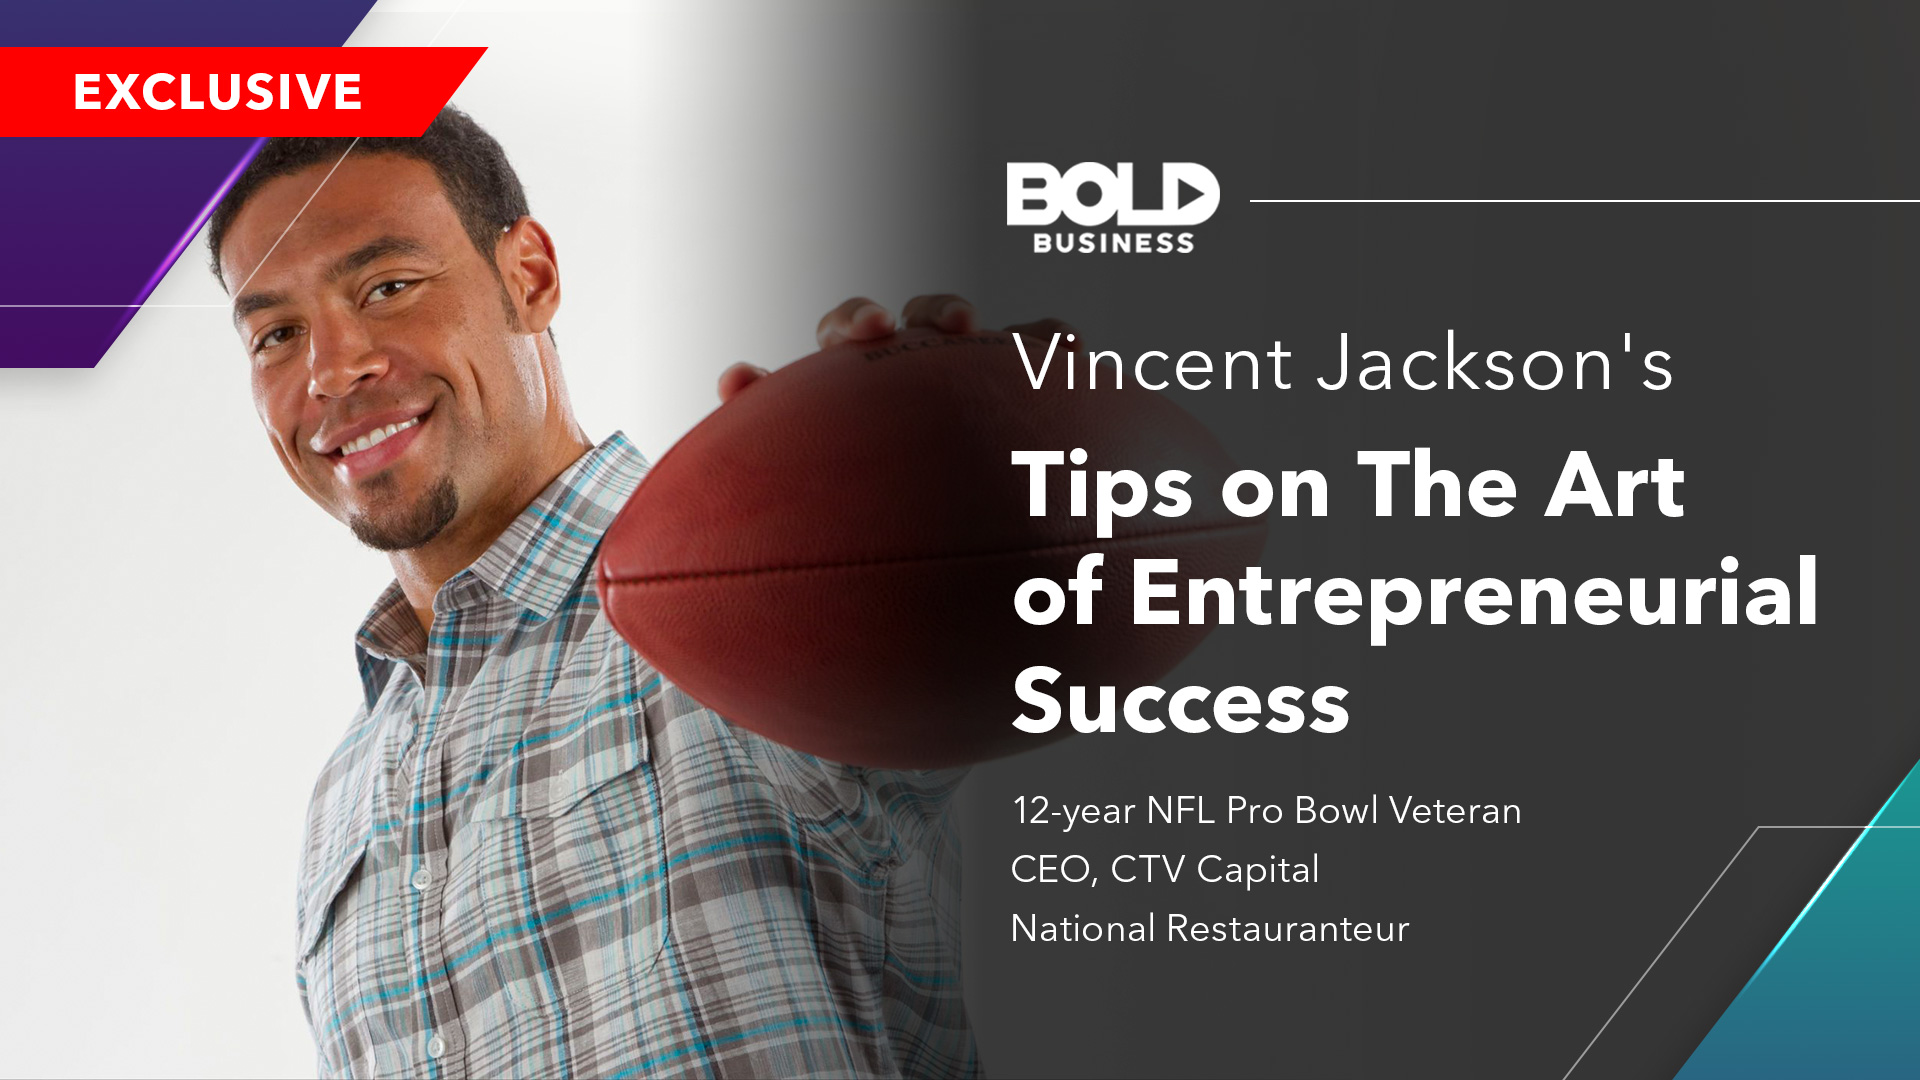 Vincent Jackson Provides Tips On Entrepreneurial Success